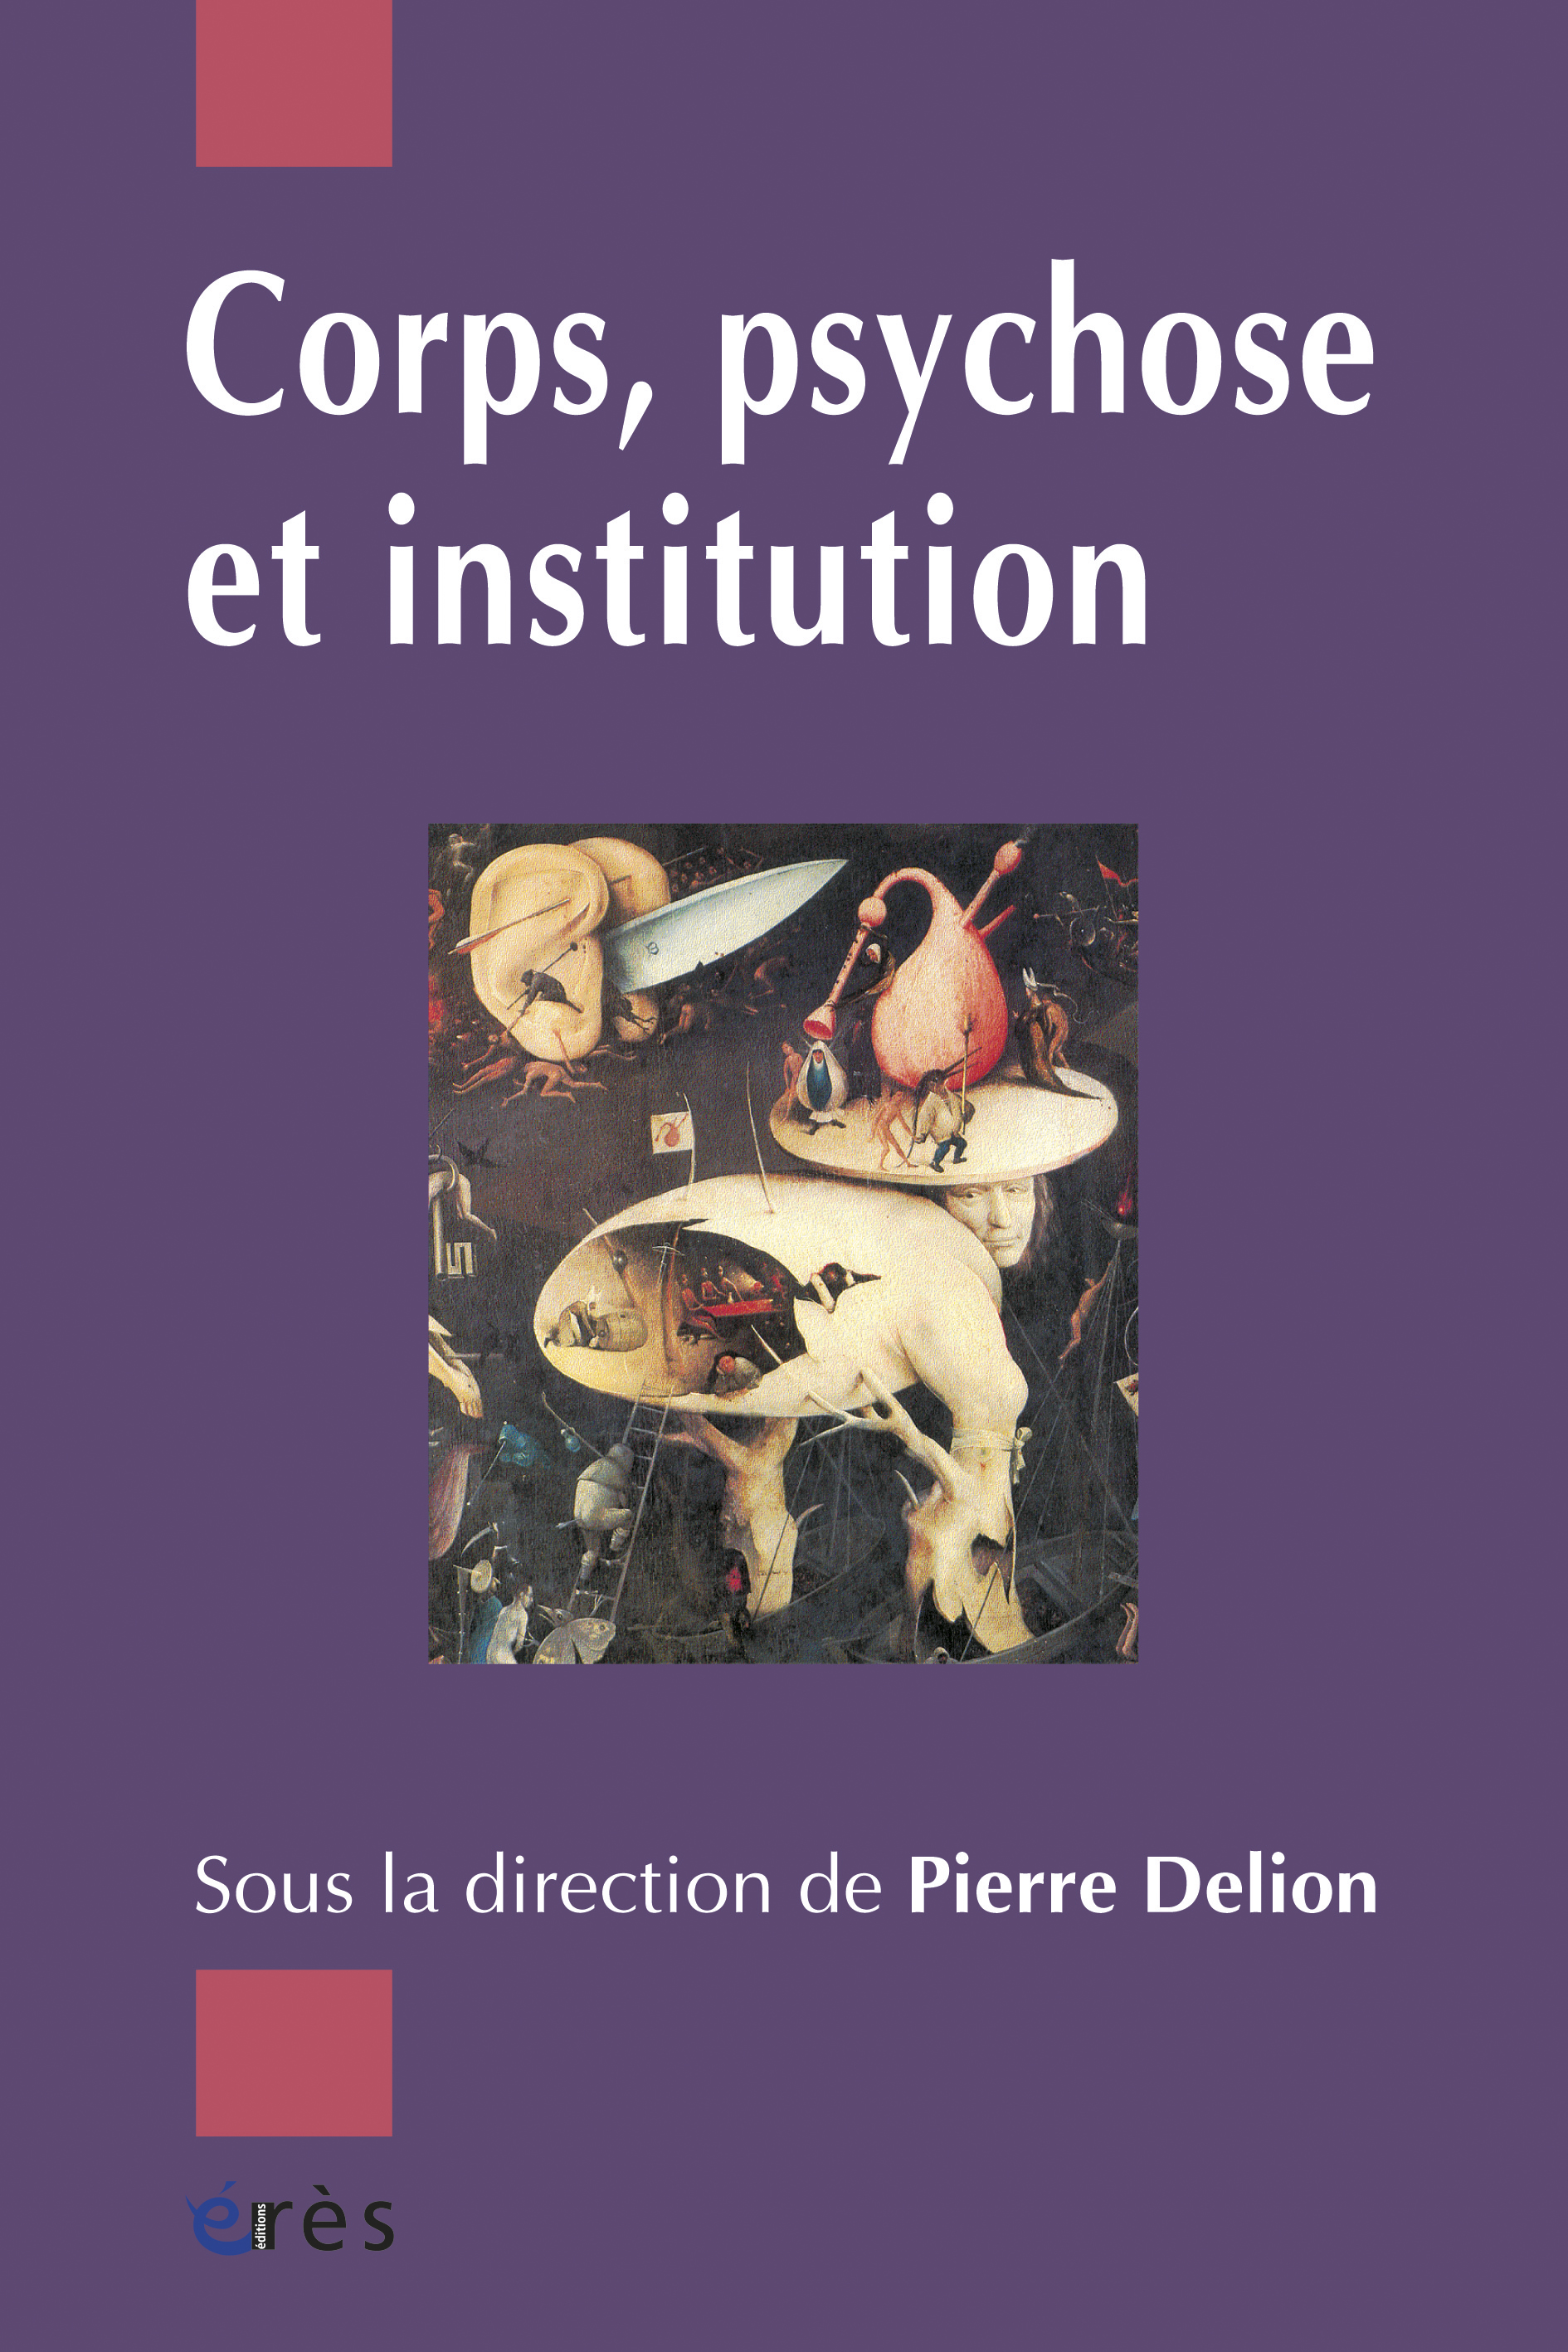 Corps, psychose et institution